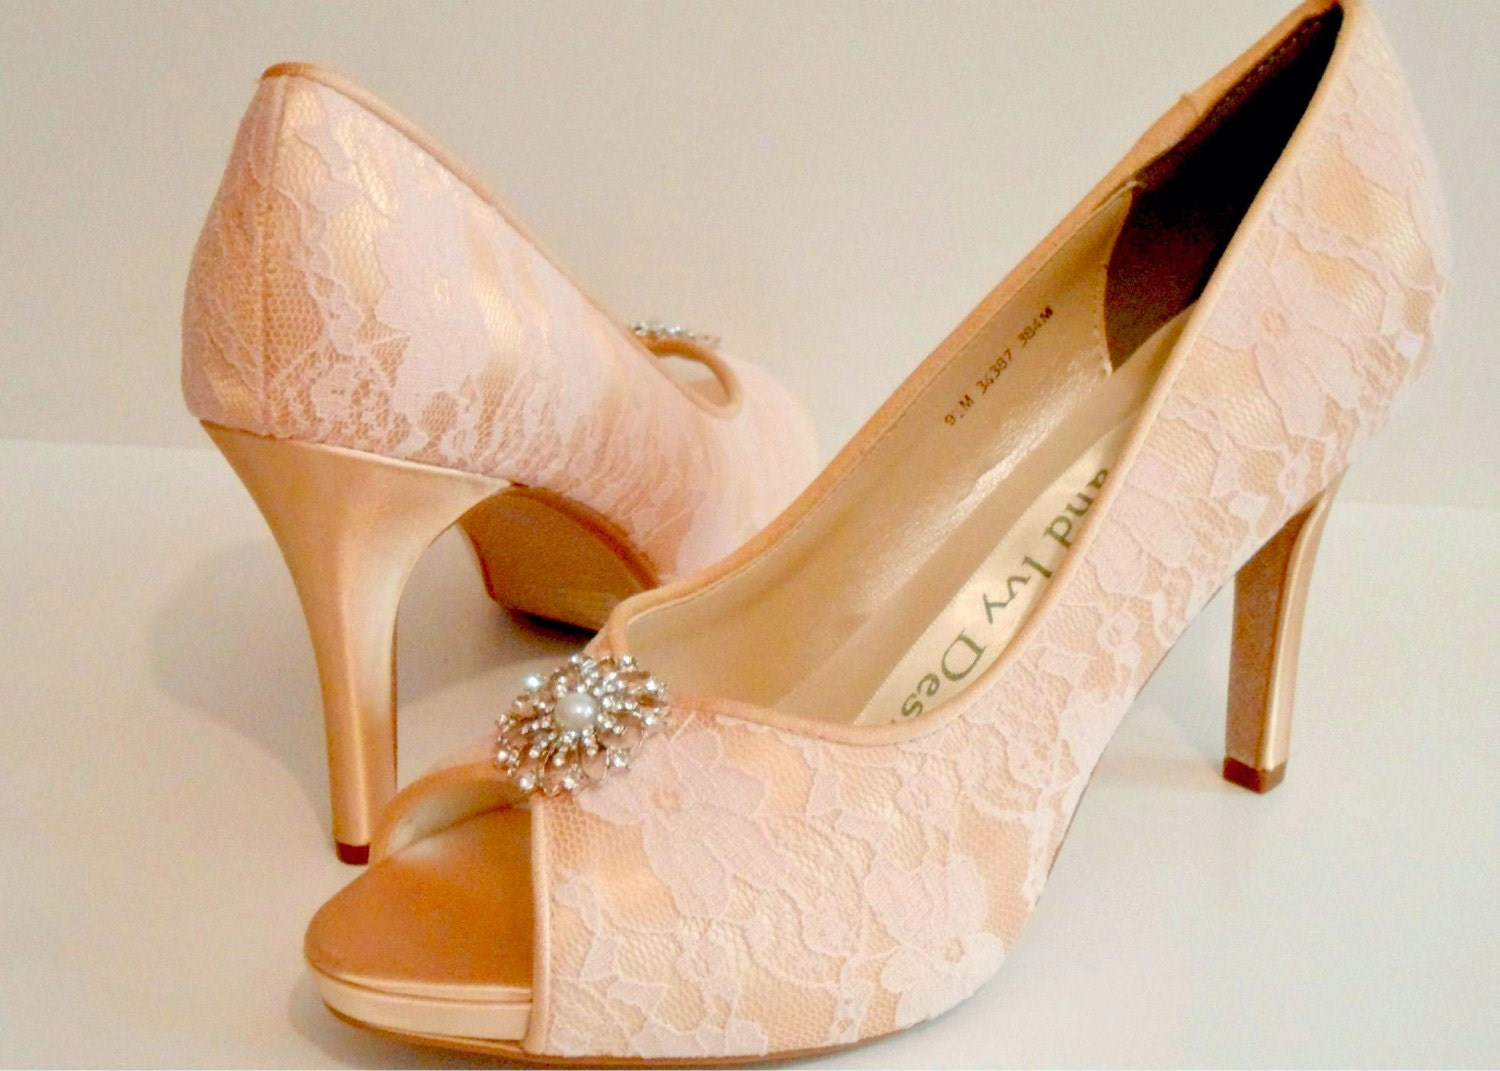 Peach Wedding Shoes 001 - Peach Wedding Shoes